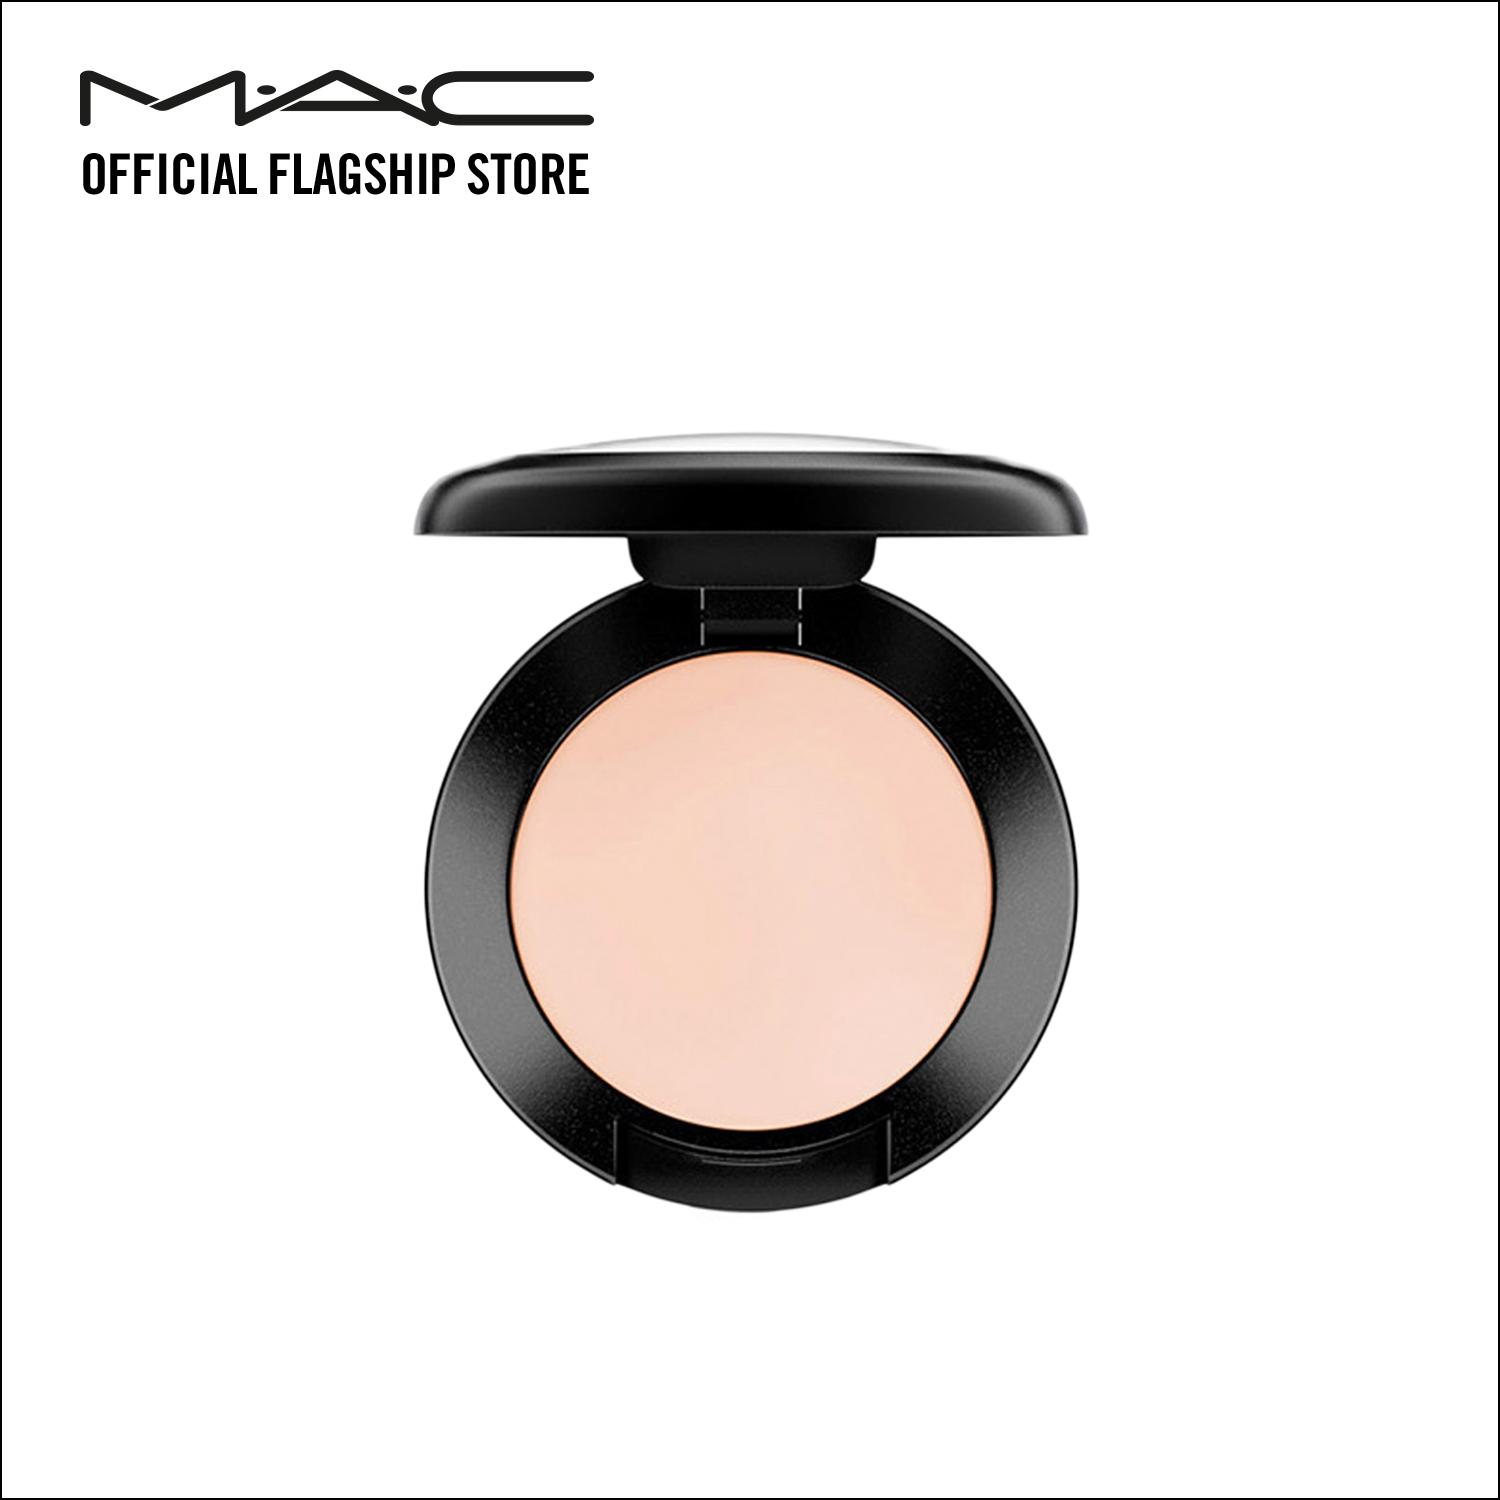 MAC STUDIO FINISH SPF 35 CONCEALER - NW20 Philippines